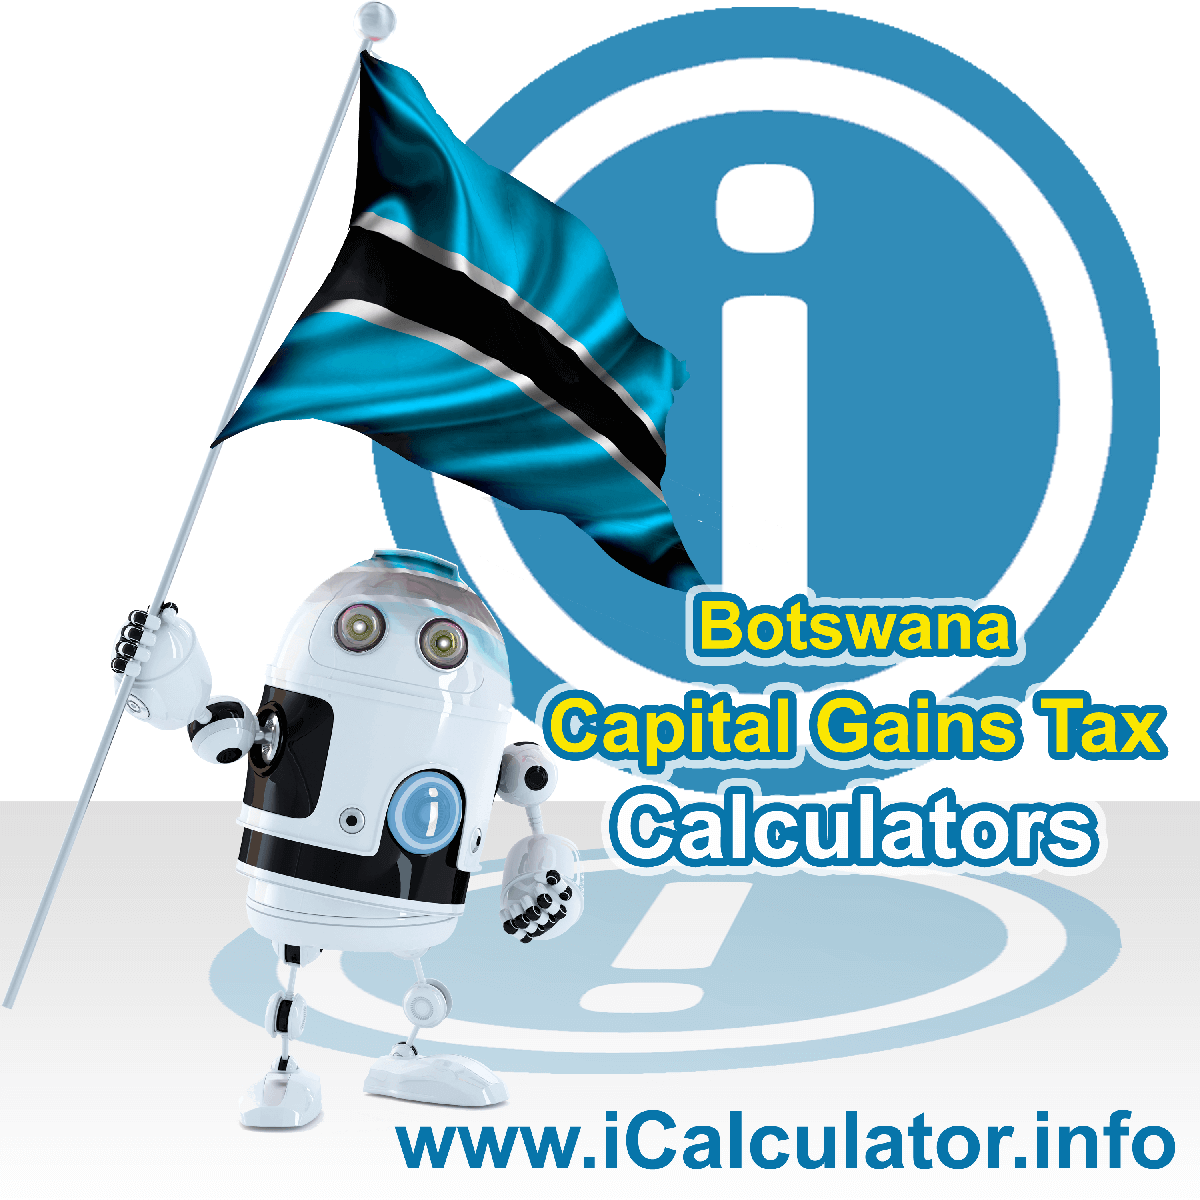 Botswana CGT Calculator. This image shows the Botswana flag and information relating to the capital gains tax formula used for calculating capital gains Tax in Botswana using the Botswana CGT Calculator in 2020